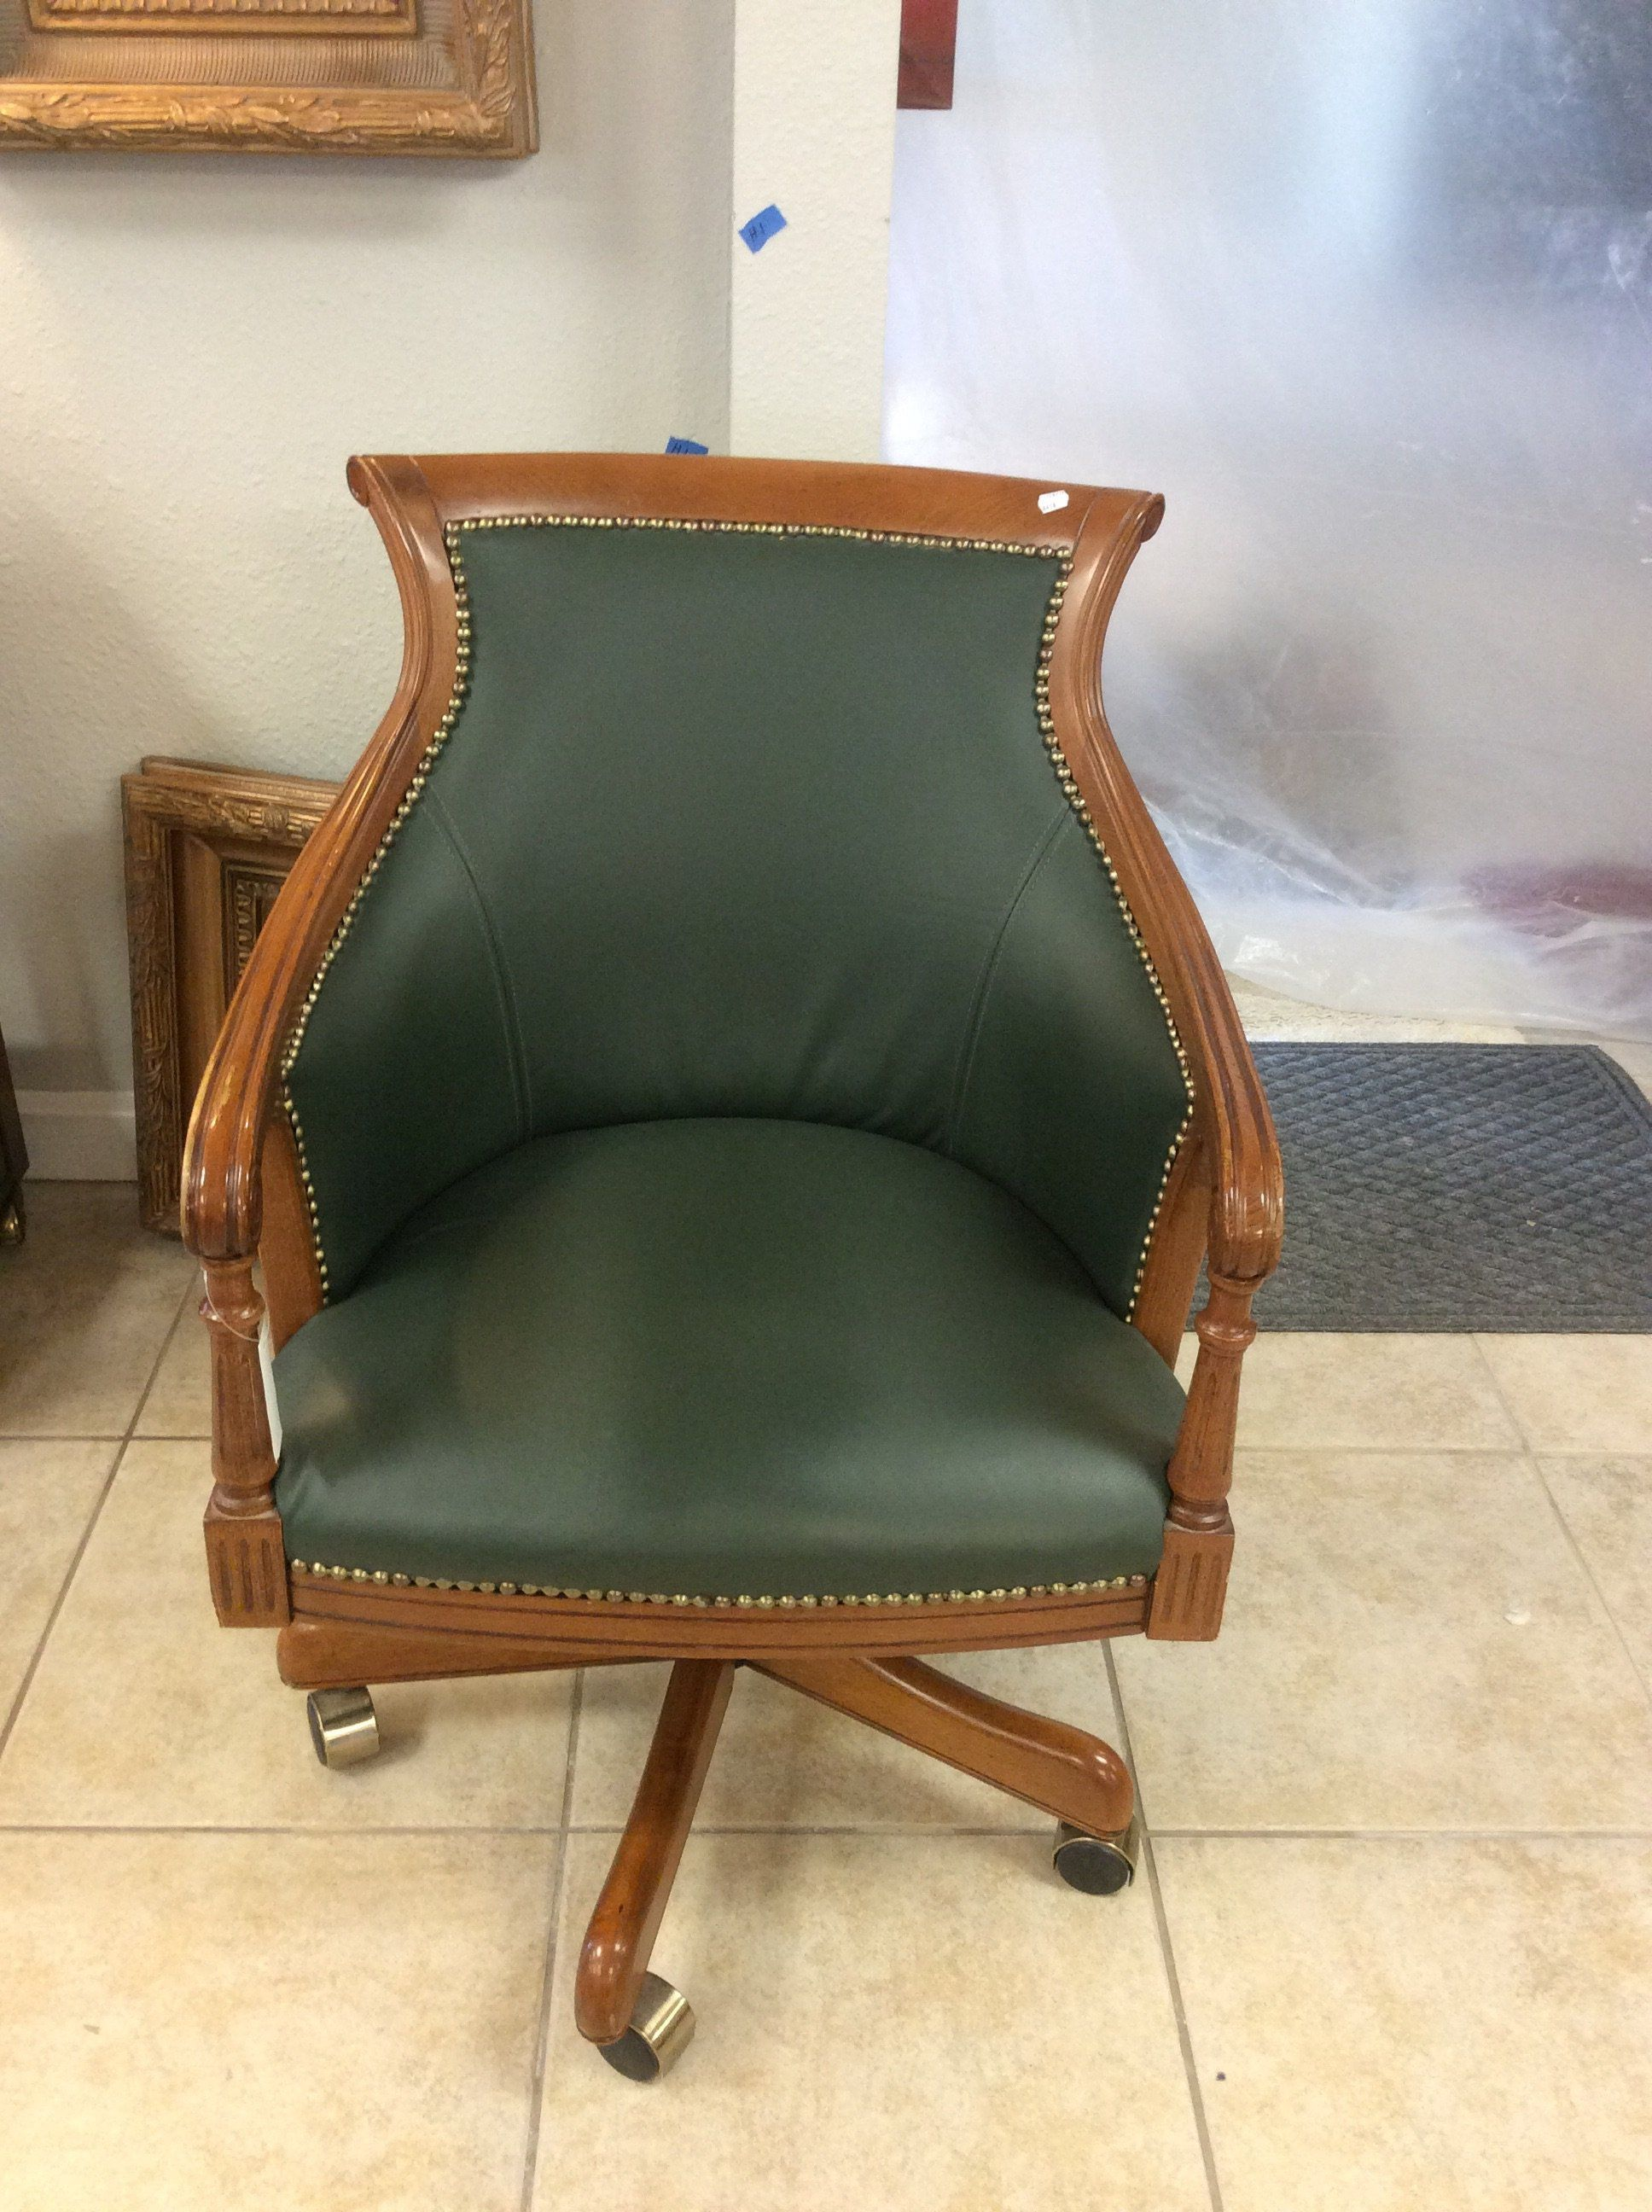 This Rolling Desk Chair Is Solid Wood With Green Gray Leather